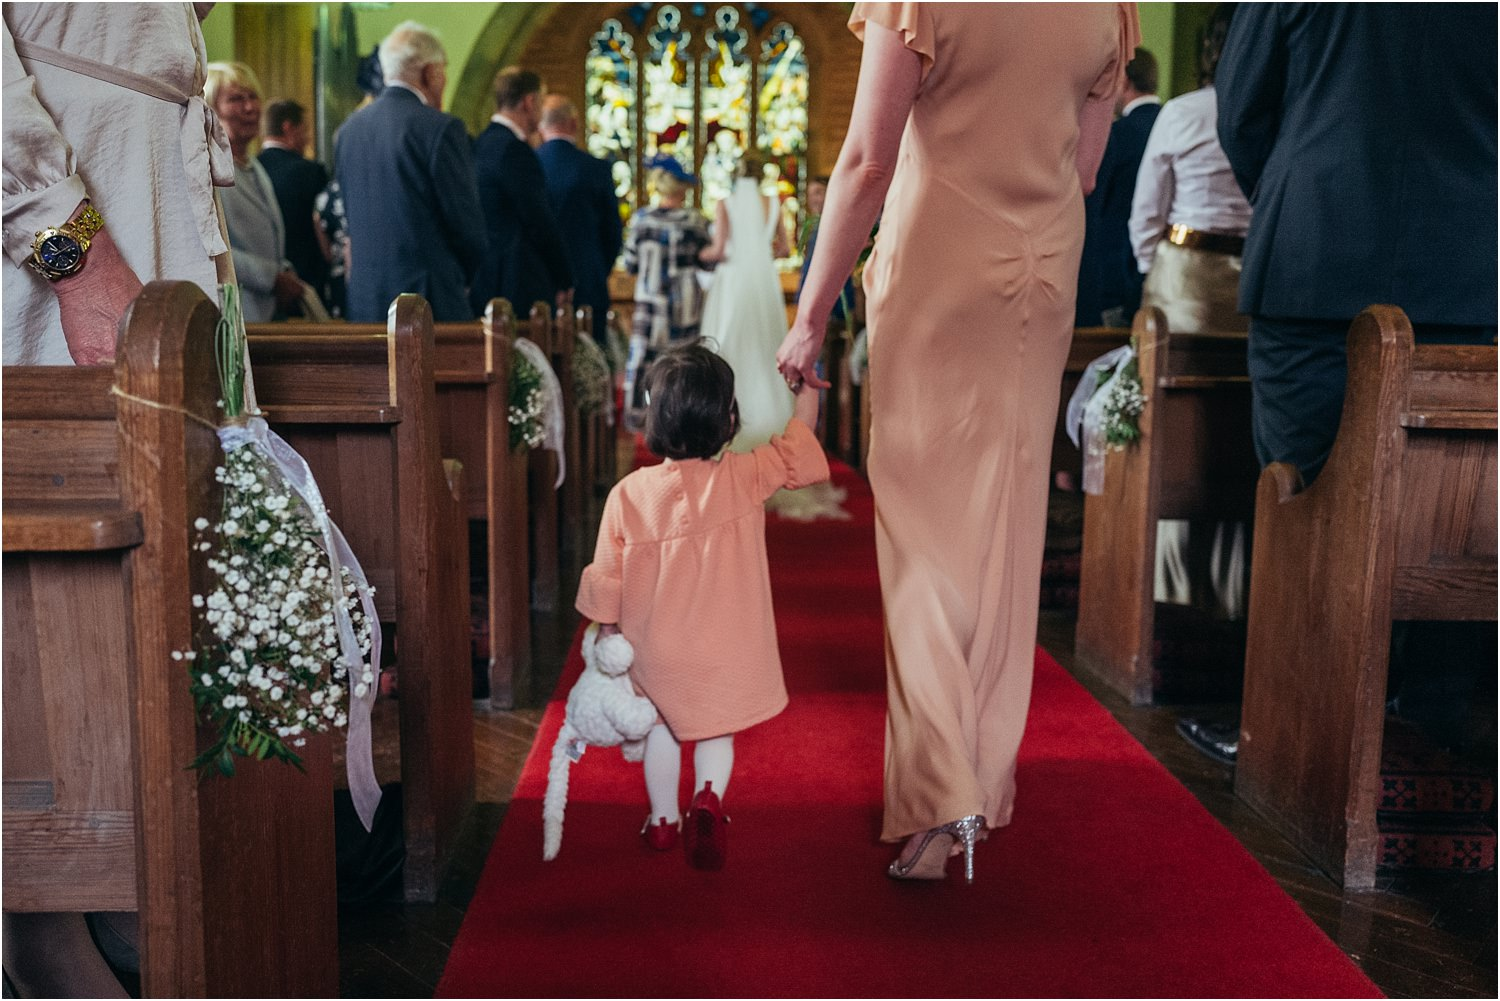 Little bridesmaid holding teddy walks down the aisle